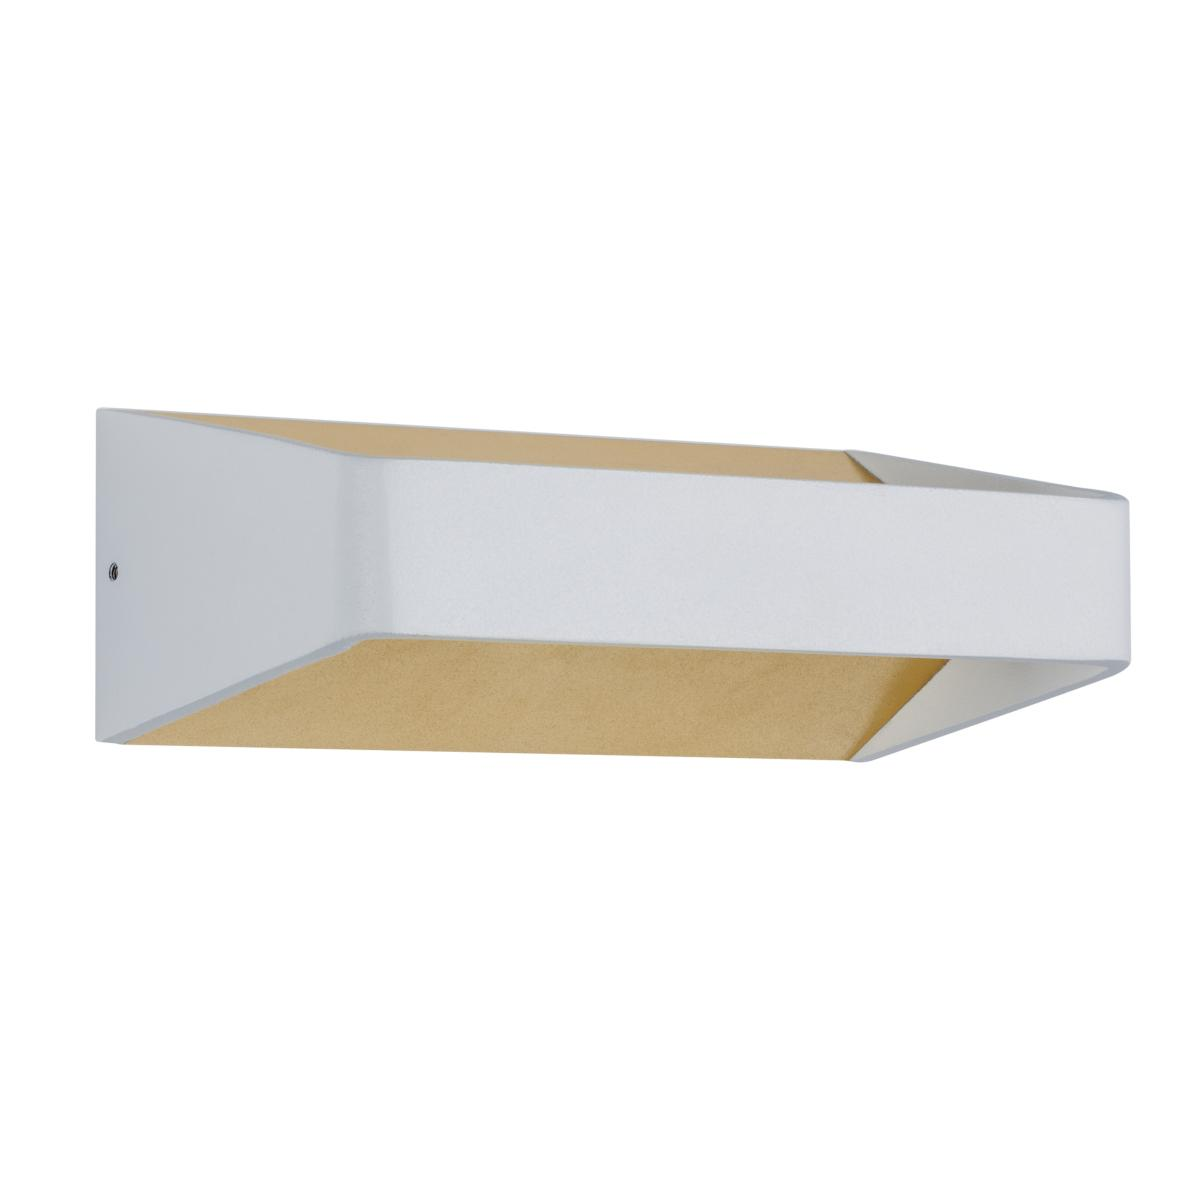 Applique murale design bar paulmann 5 5w led 220v 70798 - Hauteur applique murale ...